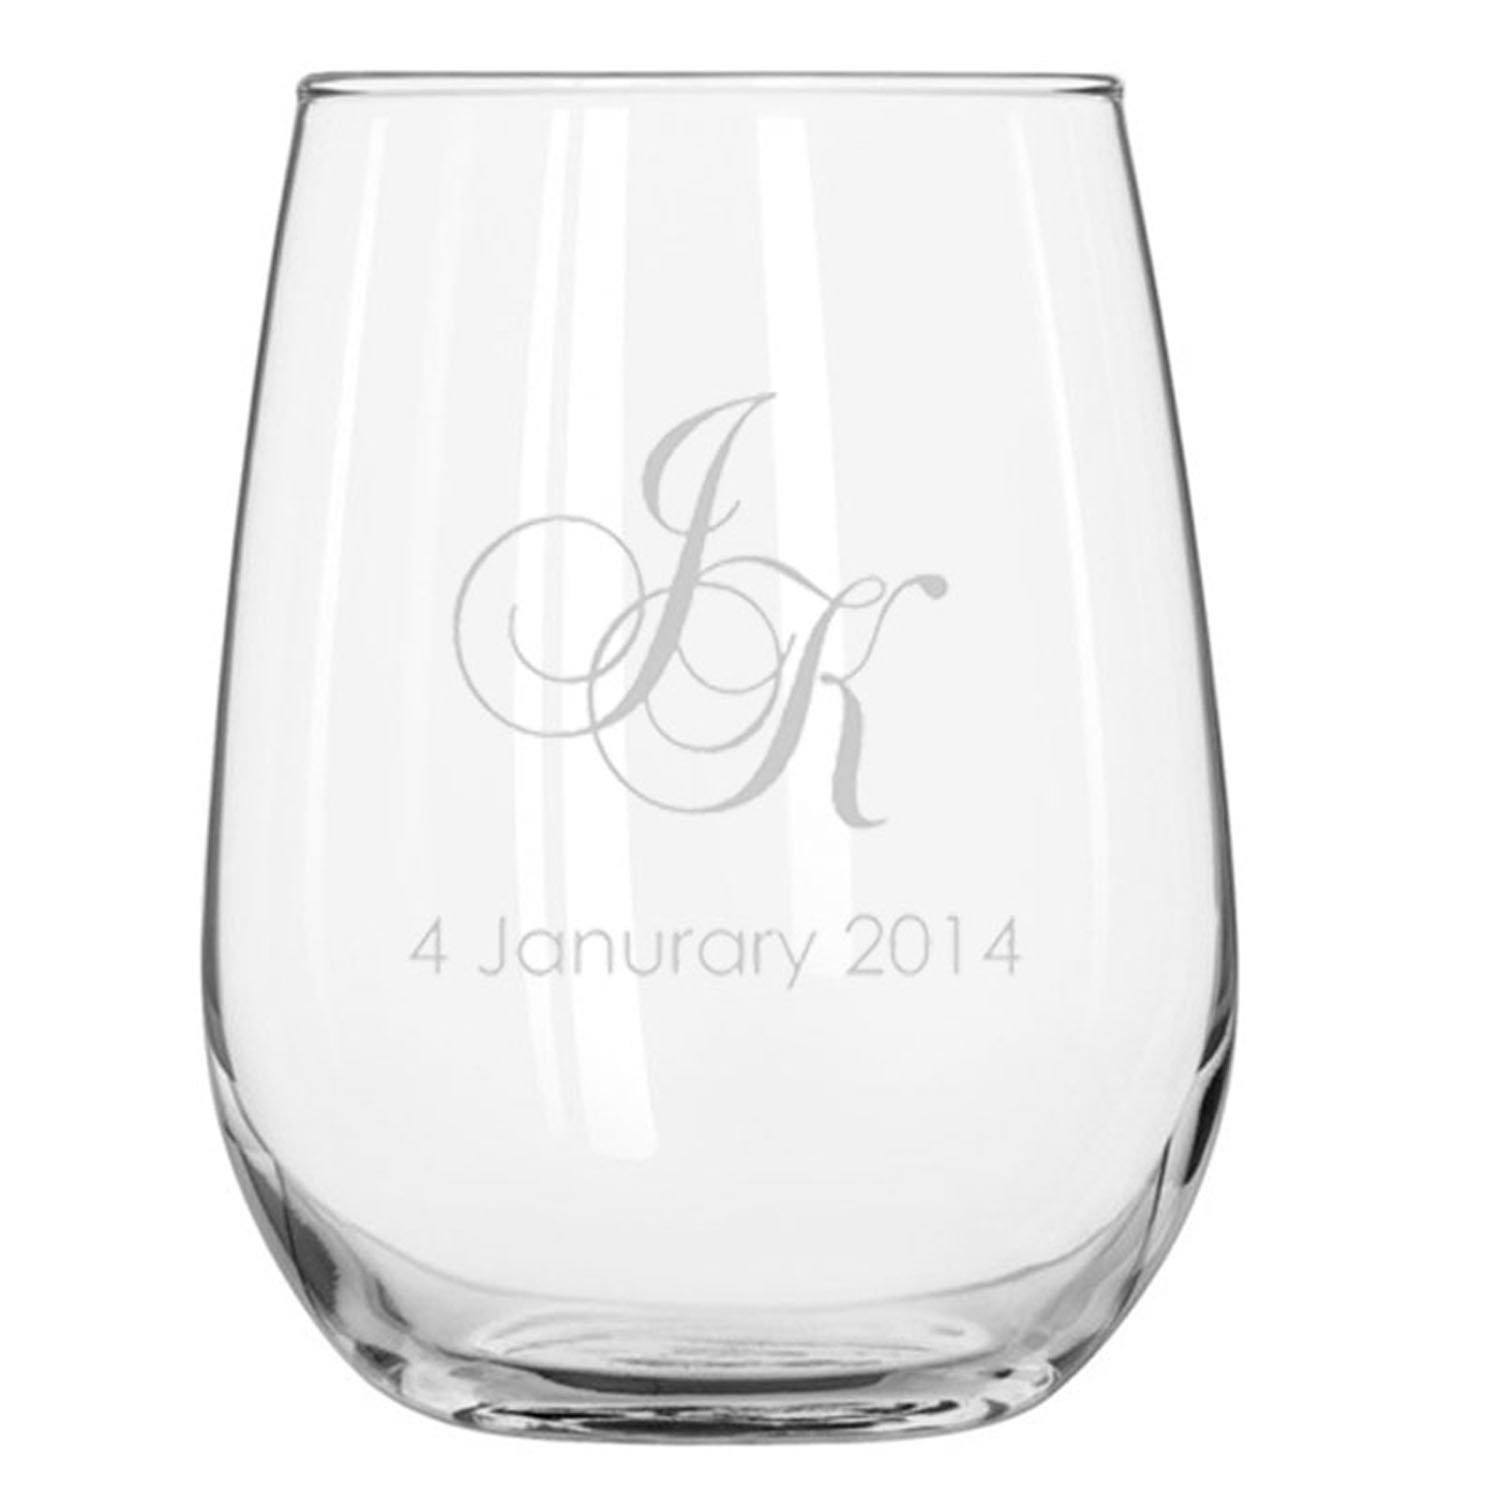 Engraved Libbey Stemless Wine Glasses 503ml